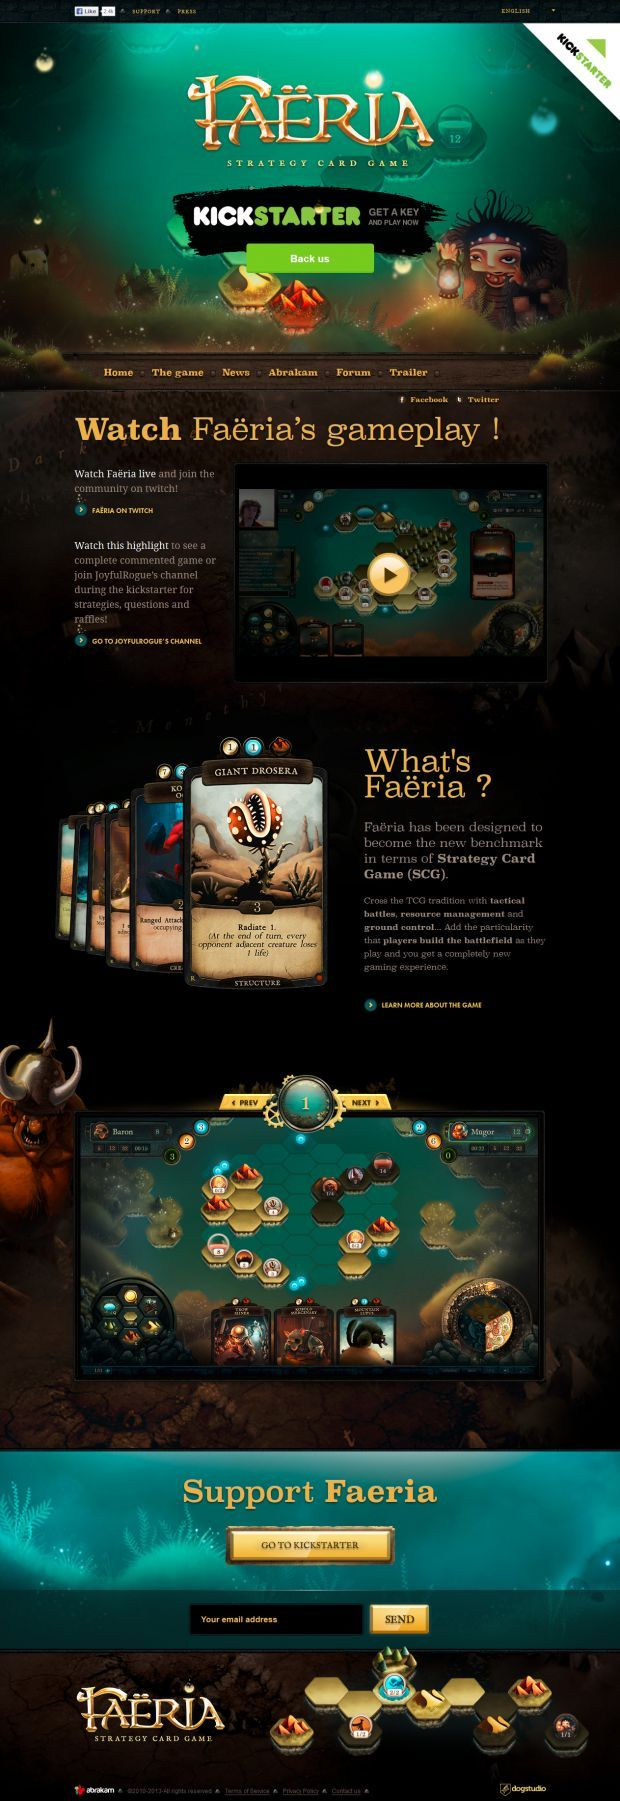 Faeria - Strategy Card Game | #webdesign #it #web #design #layout #userinterface #website #webdesign < repinned by www.BlickeDeeler.de | Take a look at www.WebsiteDesign-Hamburg.de